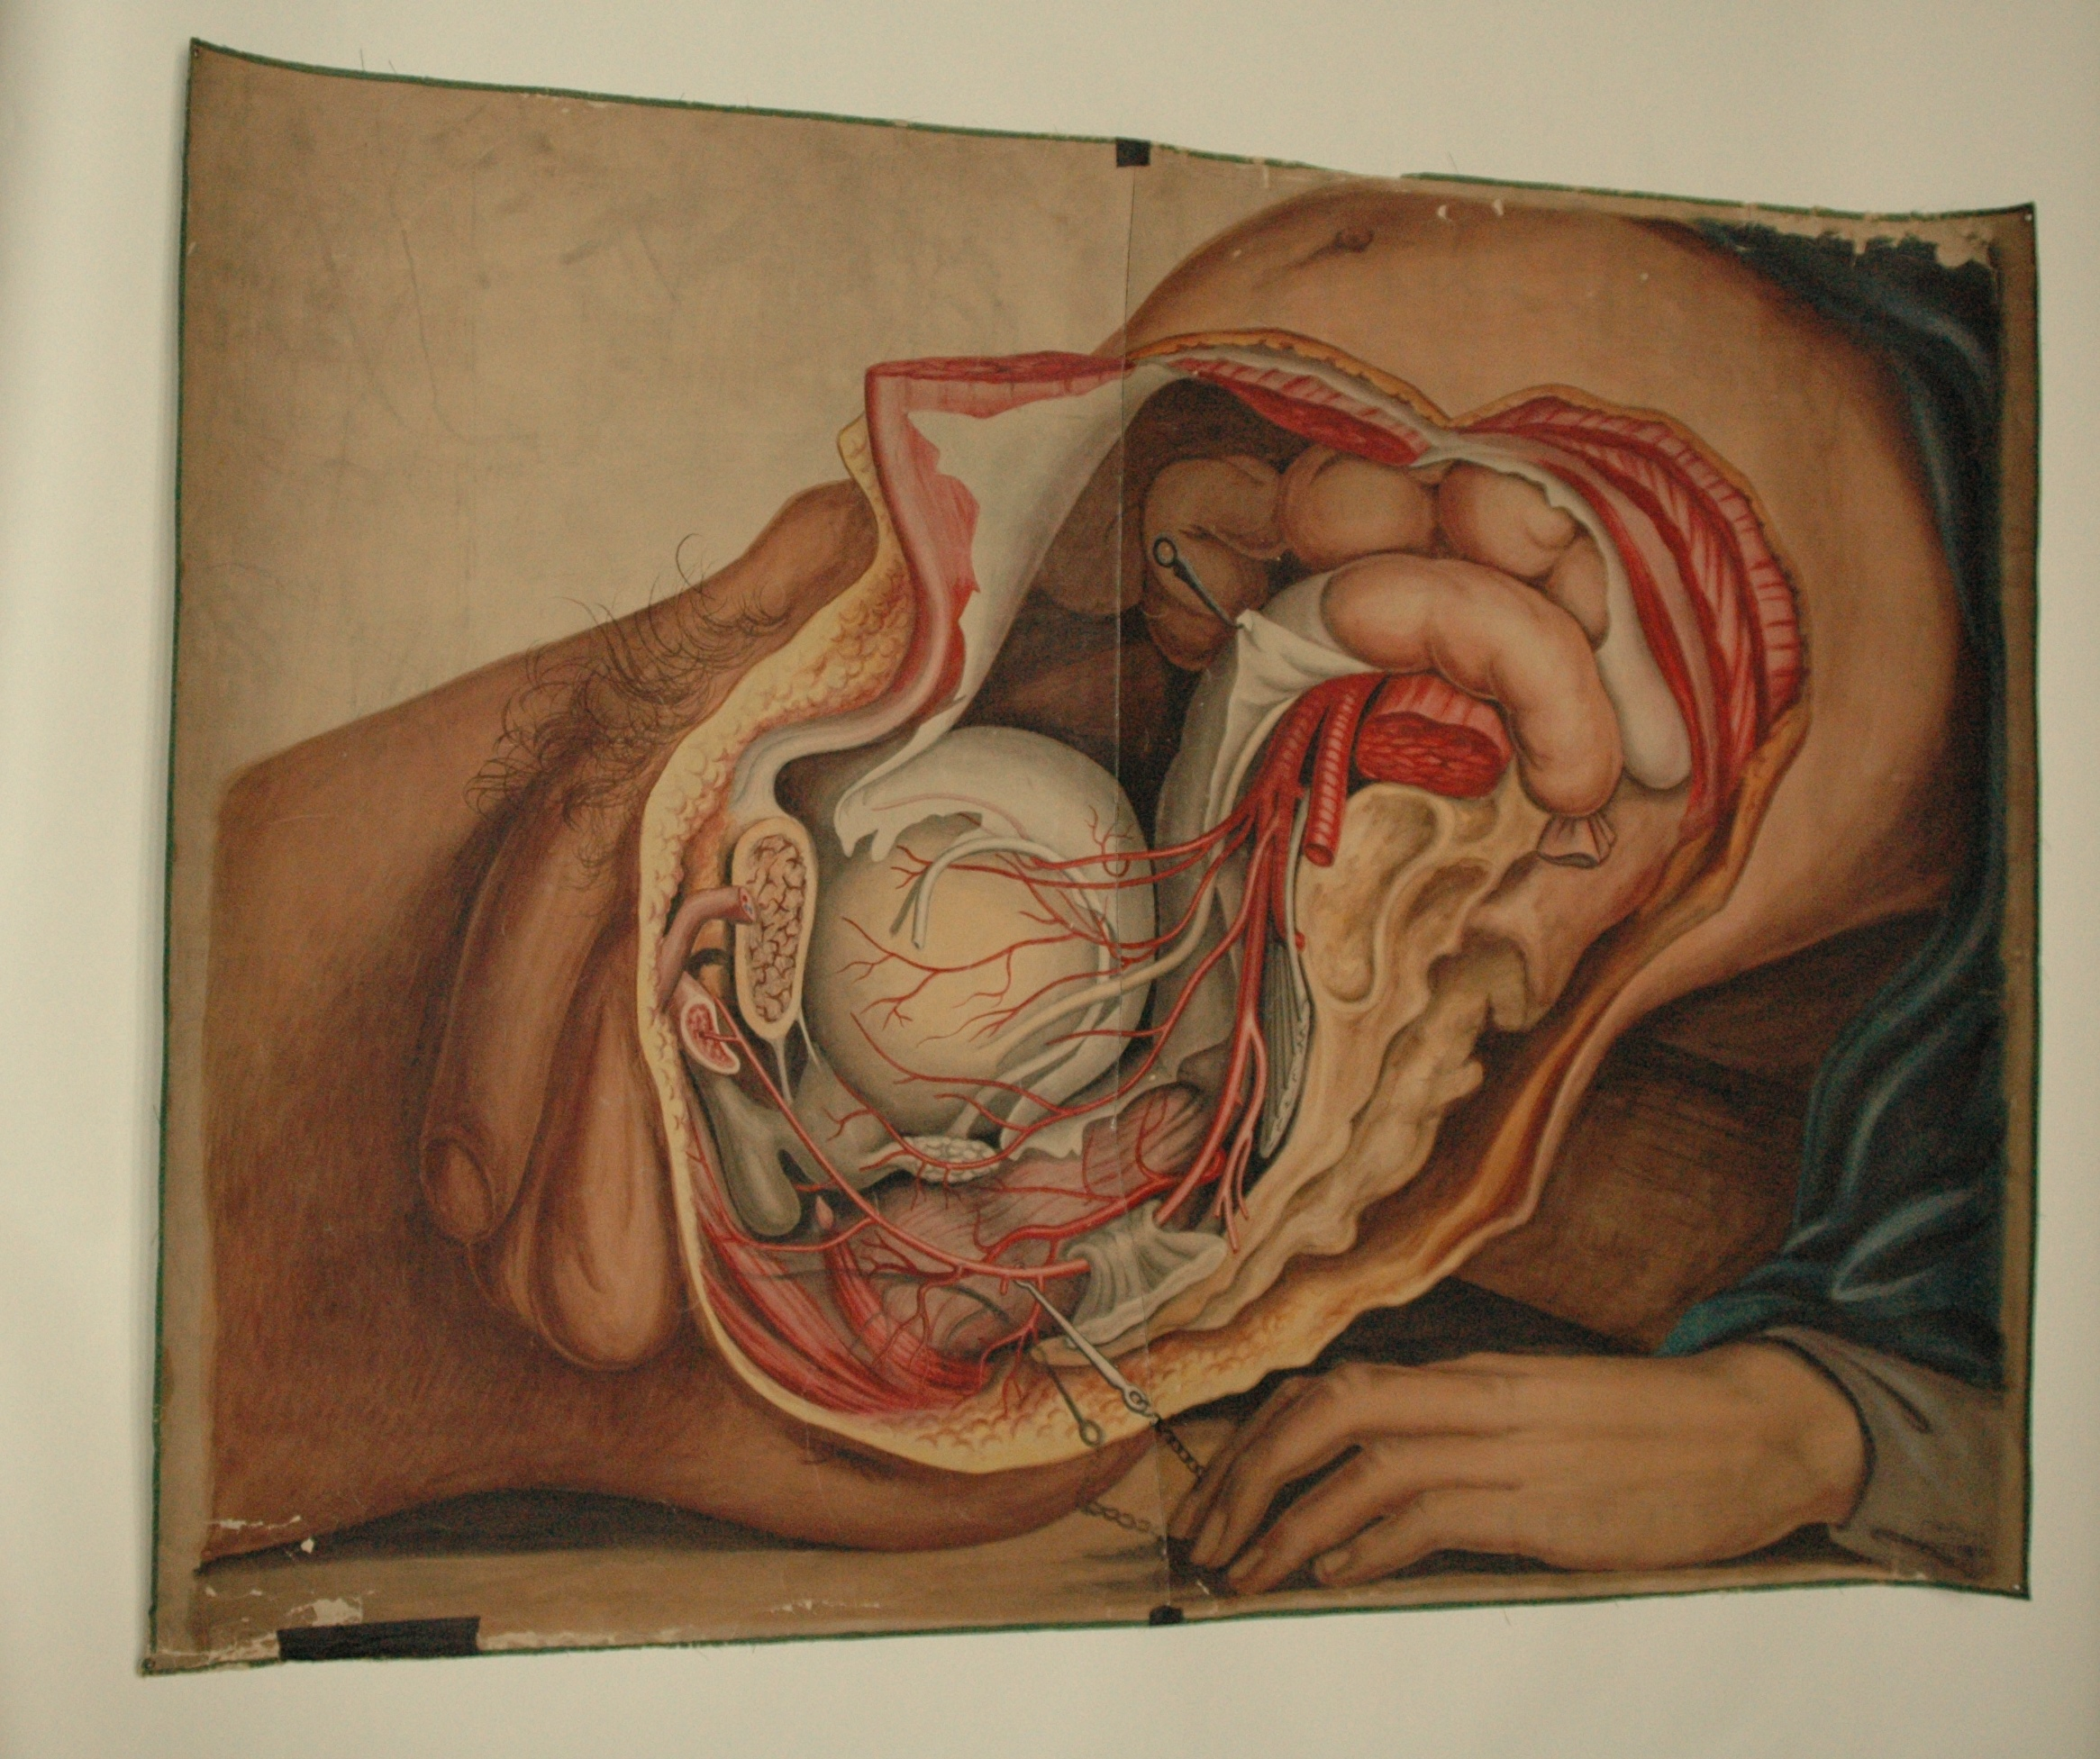 Teaching Watercolor Of Pelvic Organs And Arteries Of The Male Body